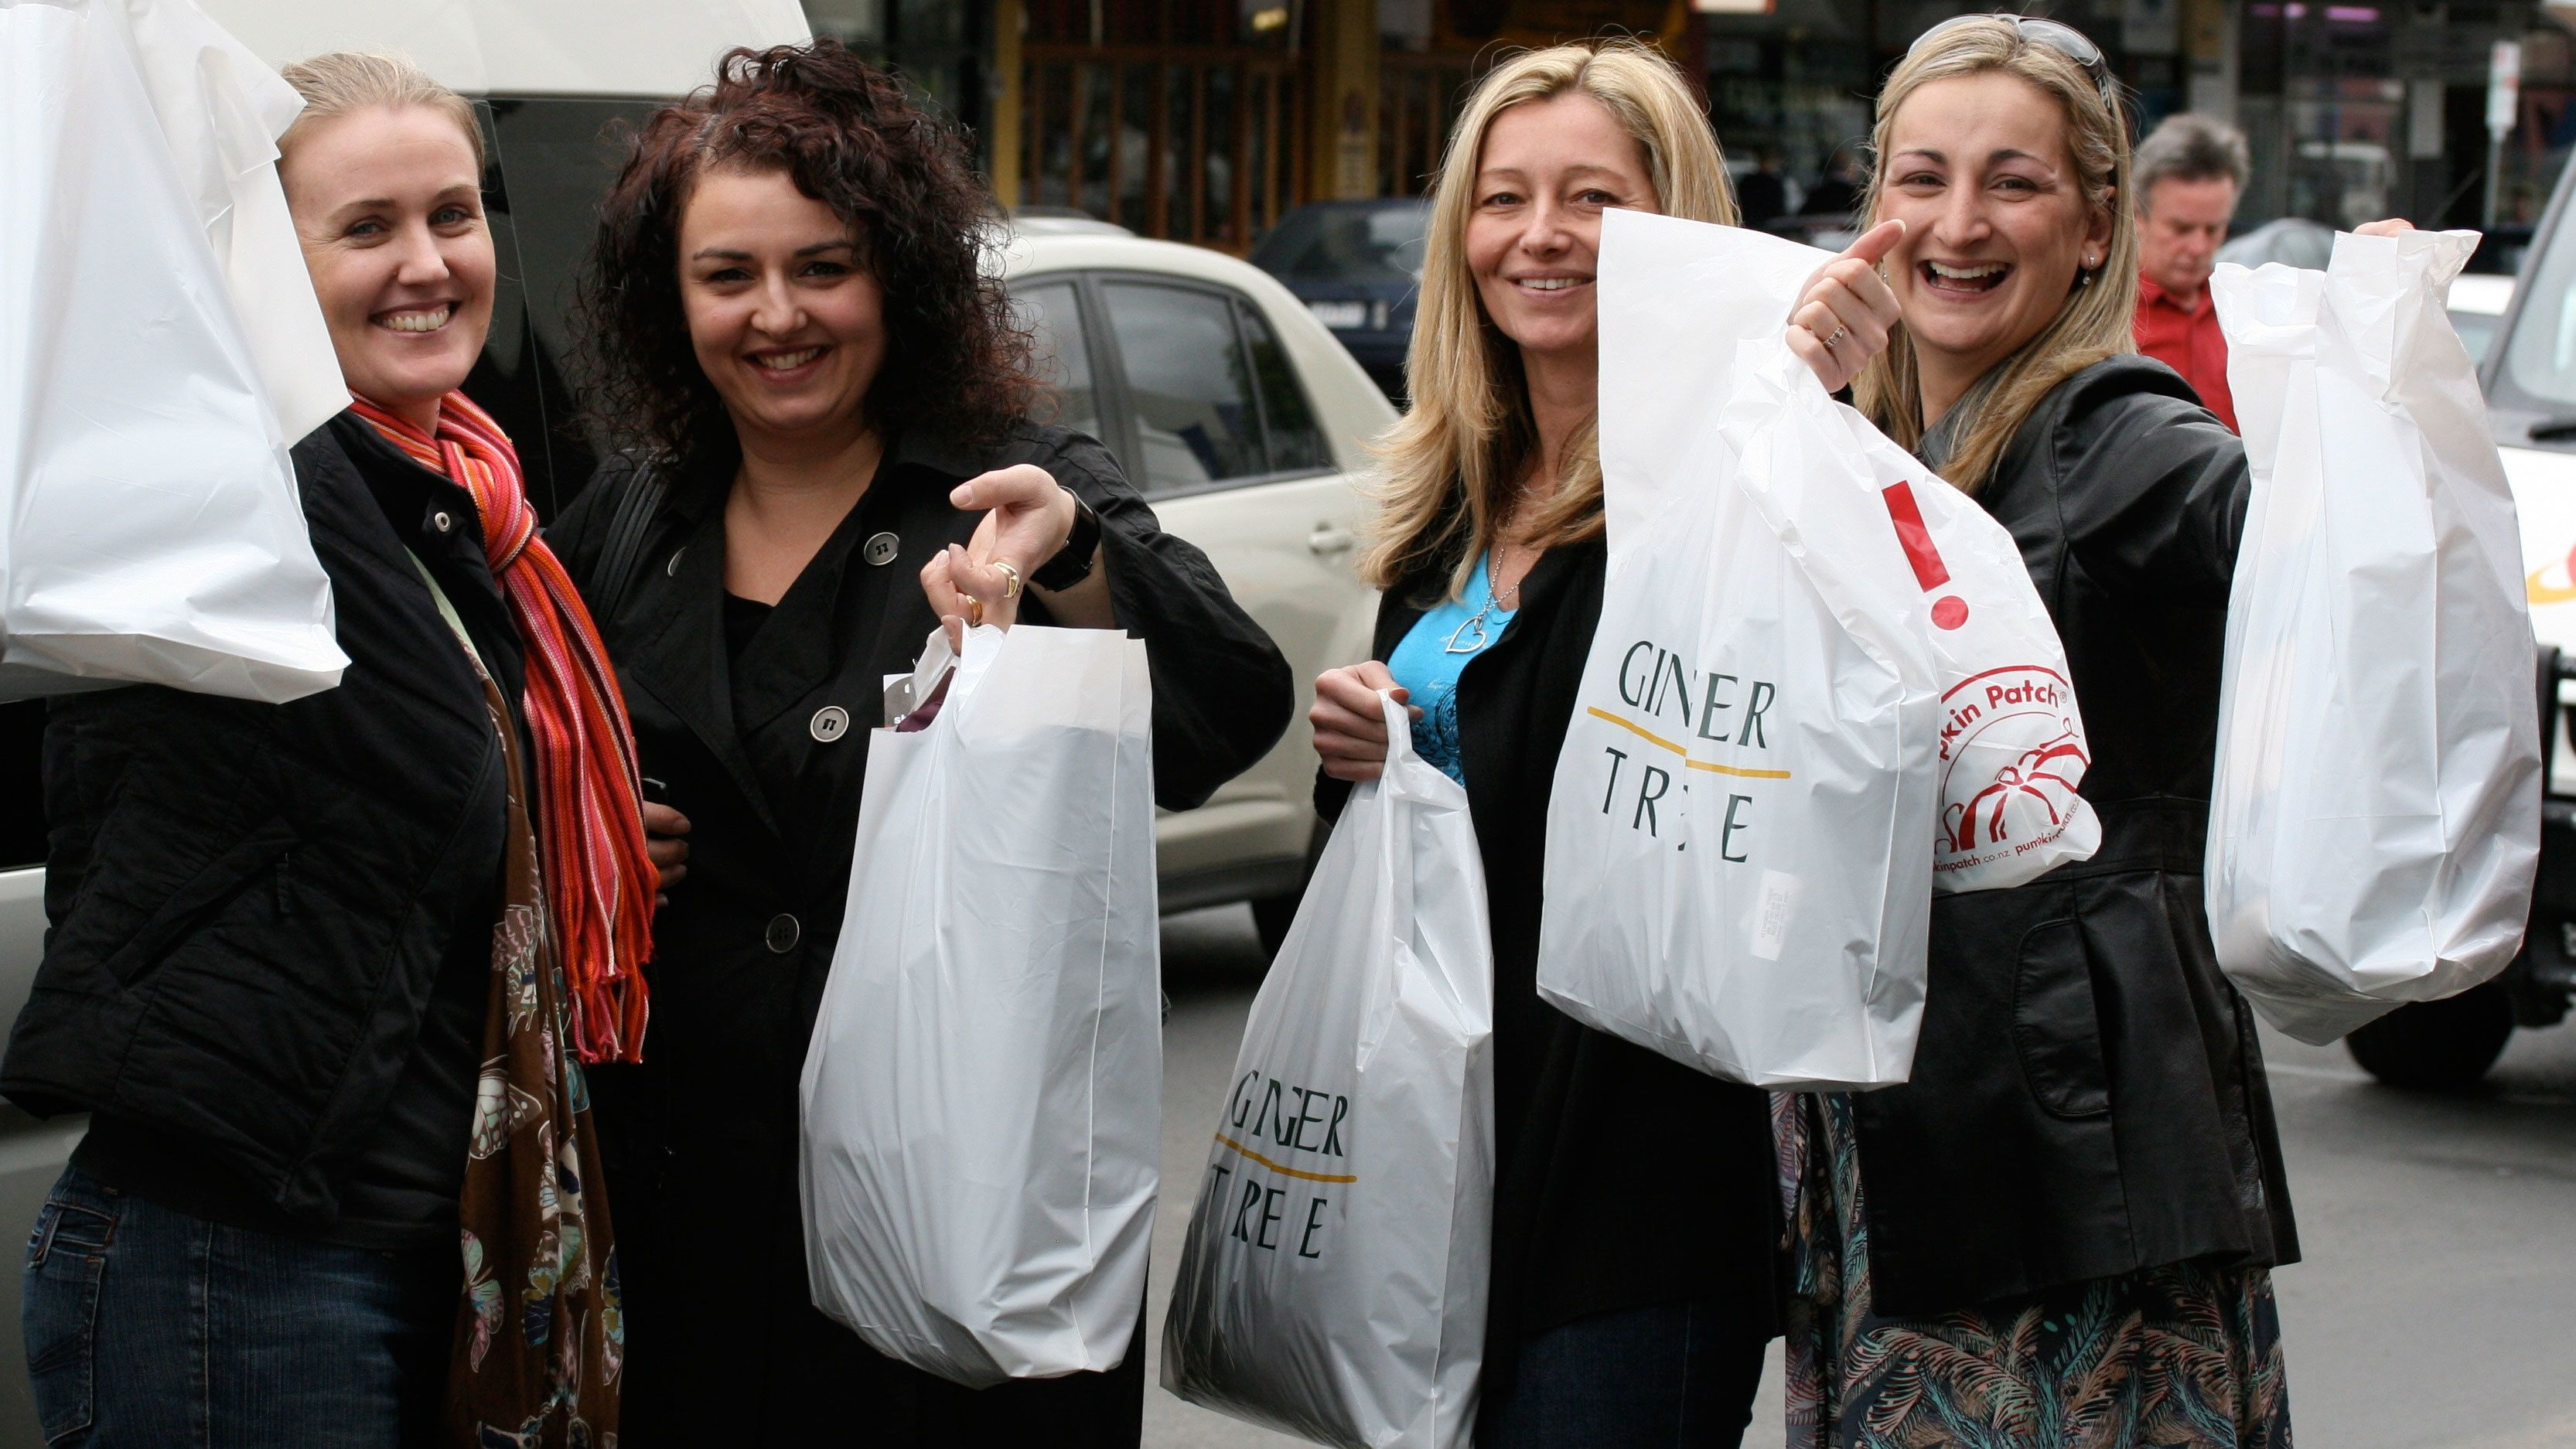 Shopping group holding up bags of purchases in Melbourne